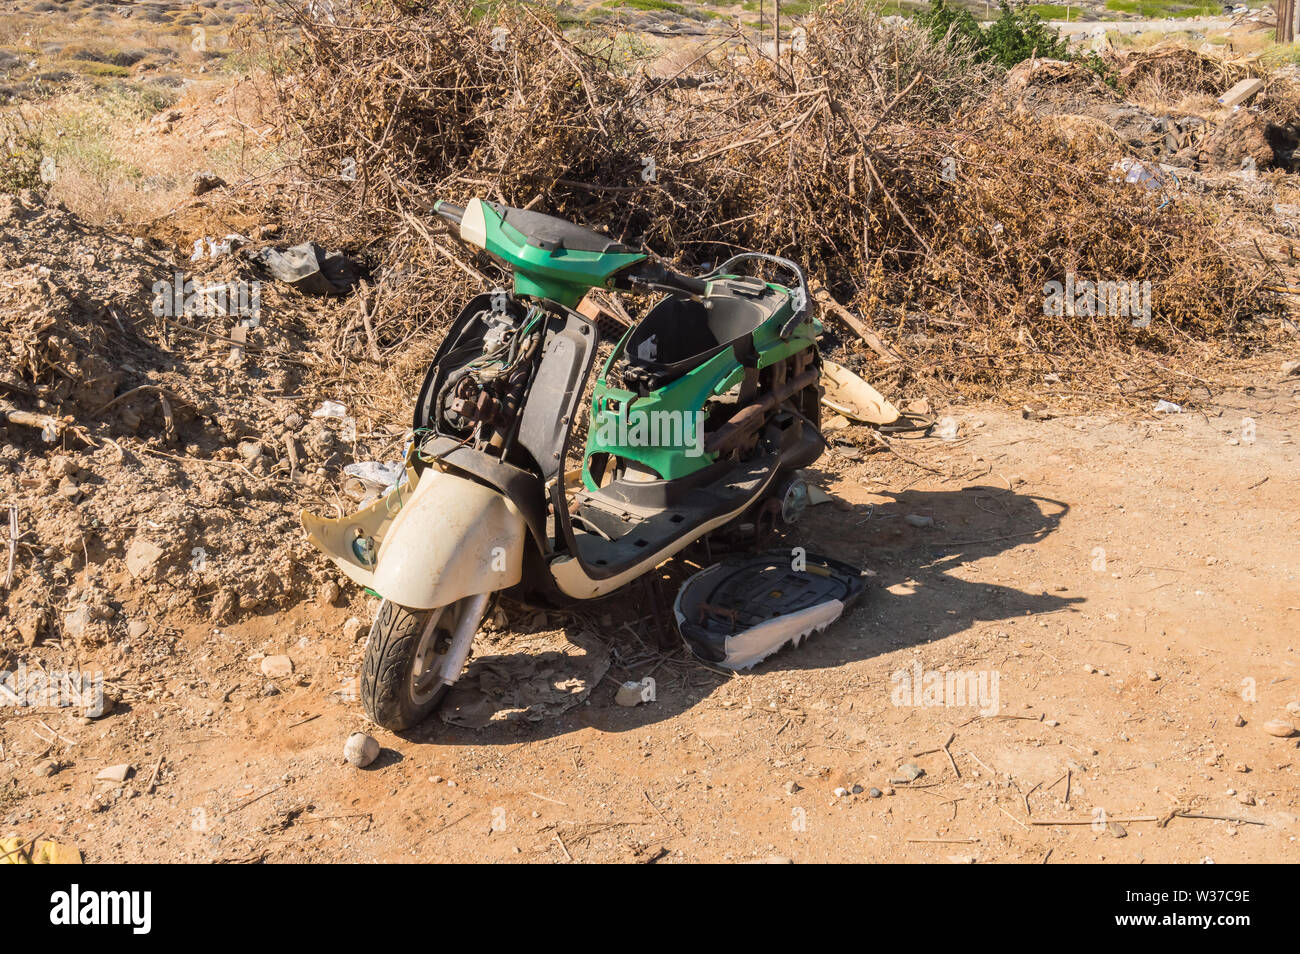 Old motorcycle destroyed. Old abandoned motorcycle in a deserted area of Crete island in Greece - Stock Image